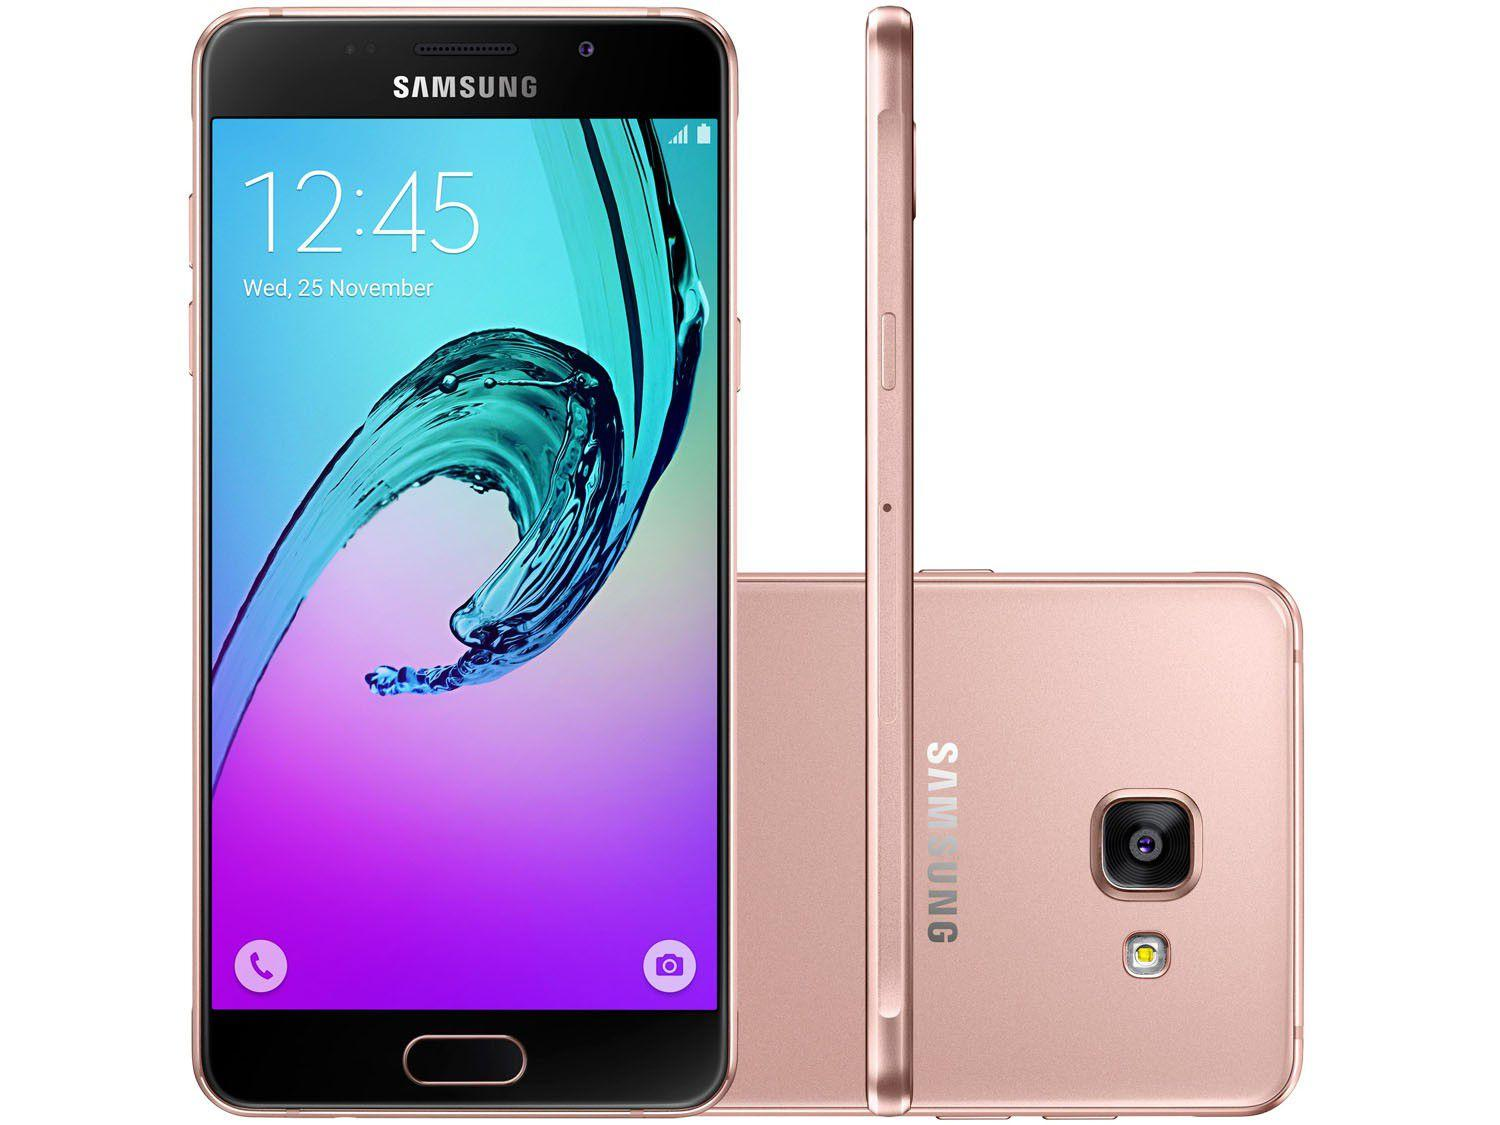 smartphone samsung galaxy a5 2016 duos 16gb ros dual chip 4g c m 13mp selfie 5mp tela 5 2. Black Bedroom Furniture Sets. Home Design Ideas